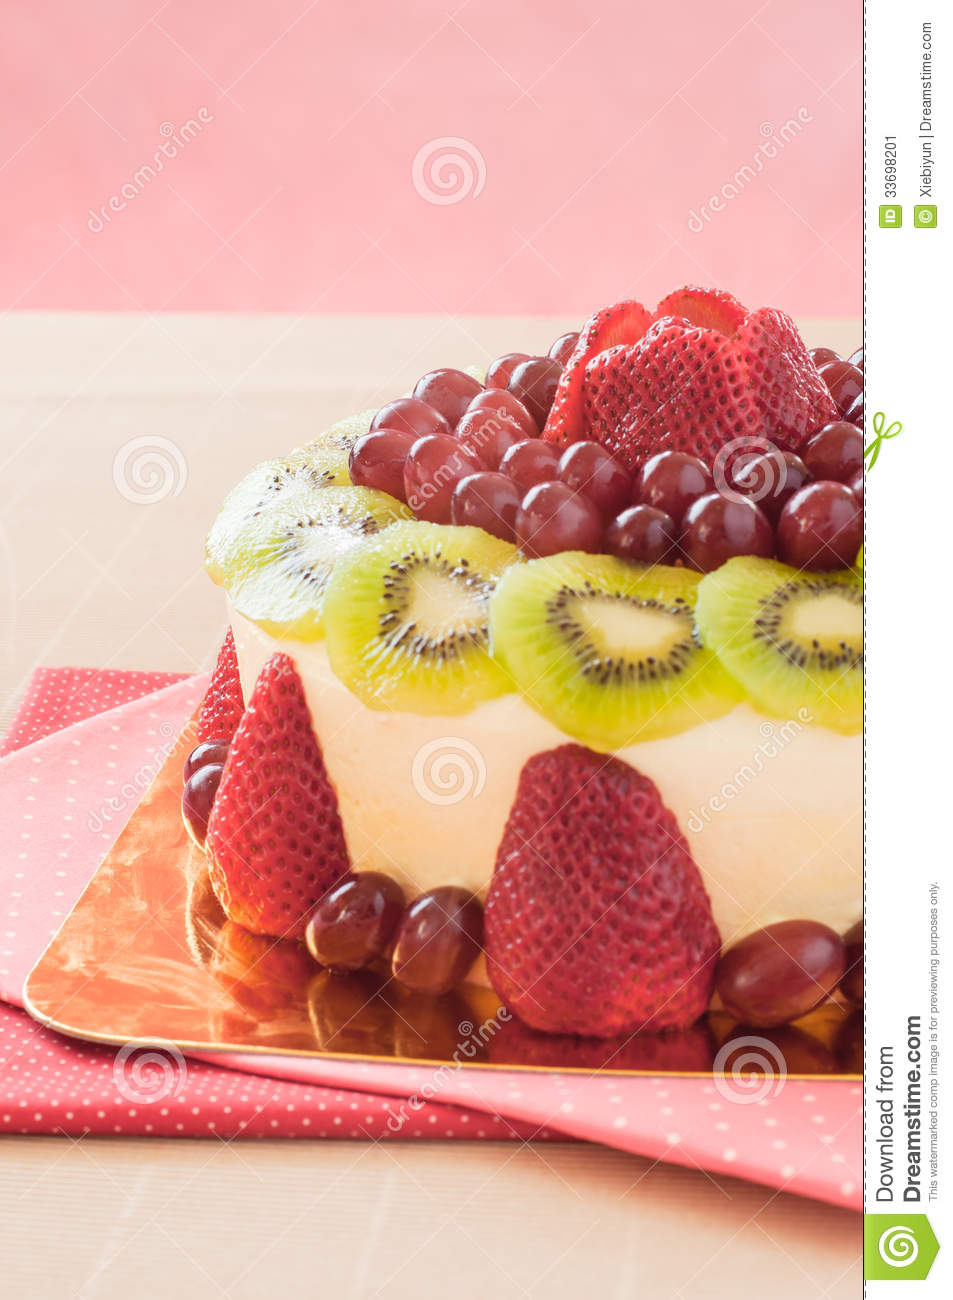 Fresh Berries Fruit Cake With Whipped Cream. Stock Image ...